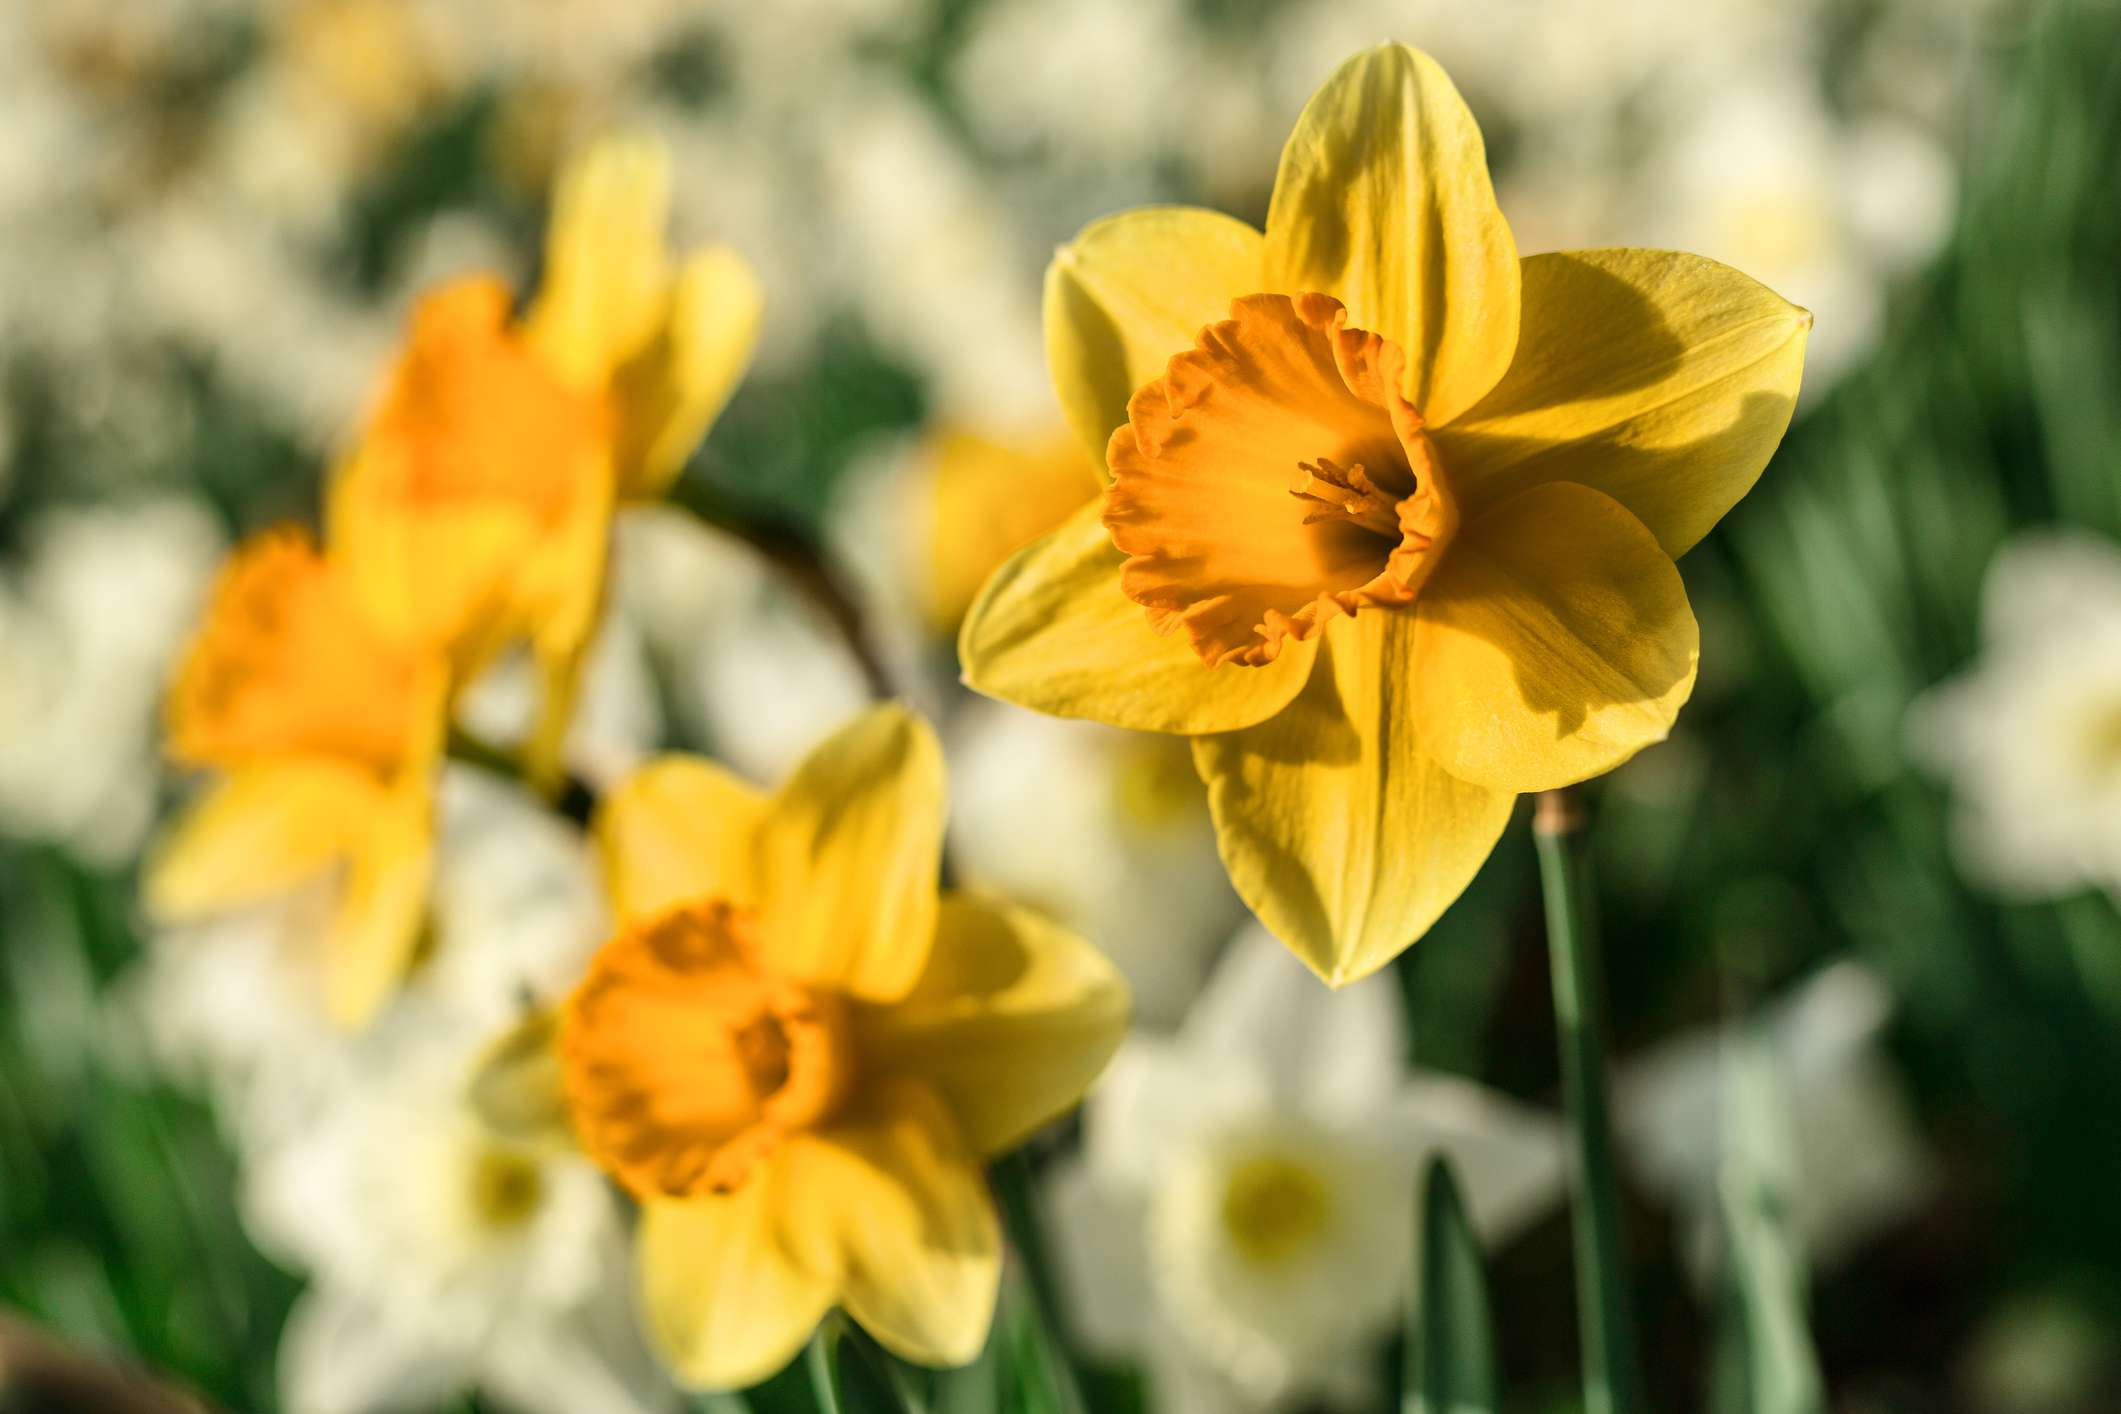 Yellow and white daffodils growing in garden